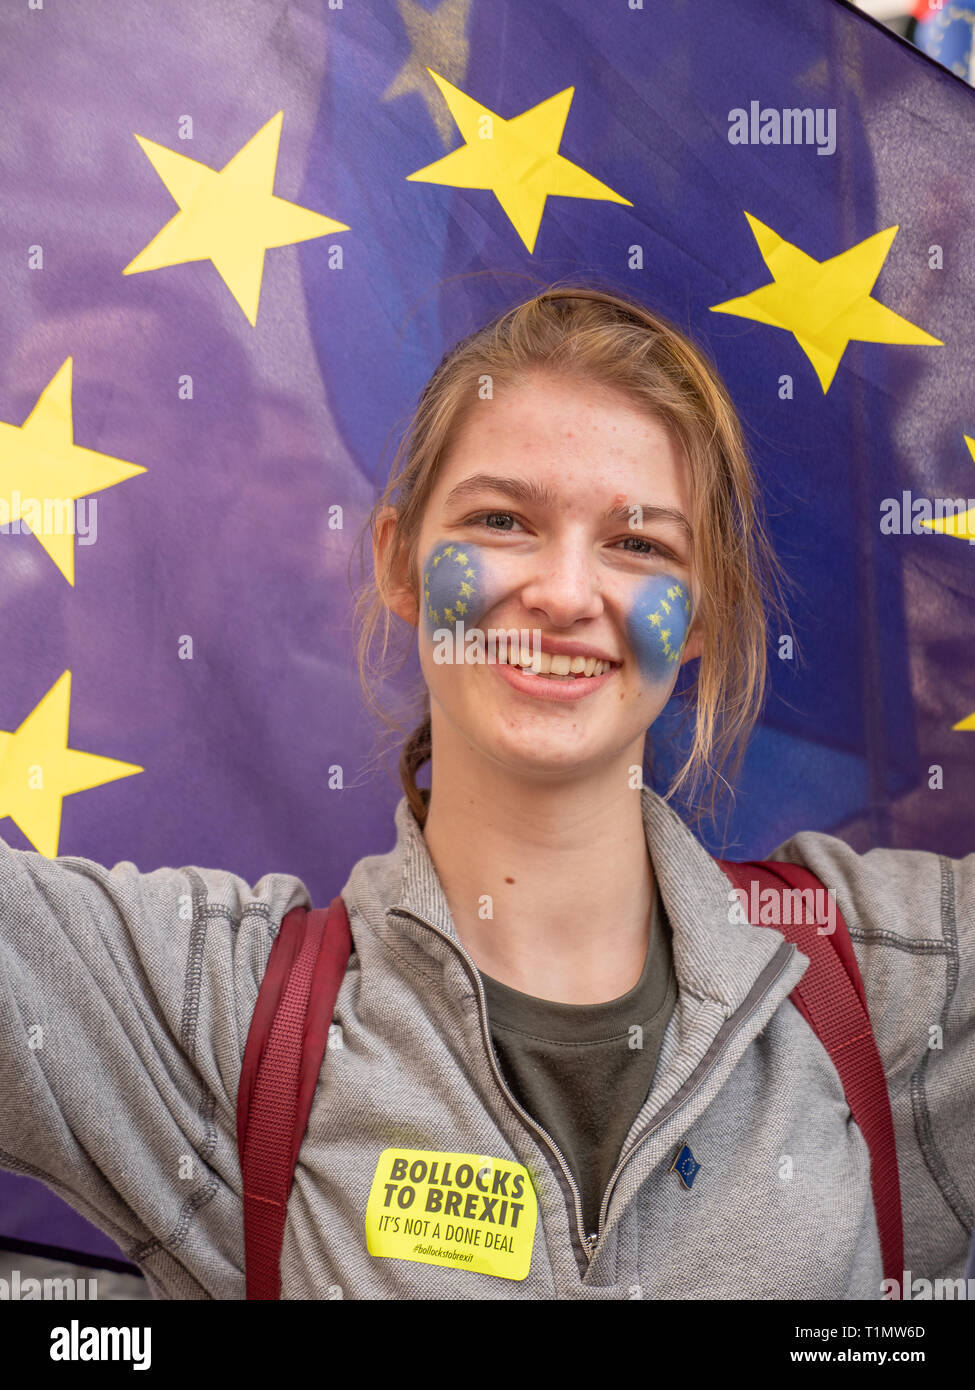 Teenager holding European Union flag on the People's Vote march, 23 March 2019, London, UK - Stock Image